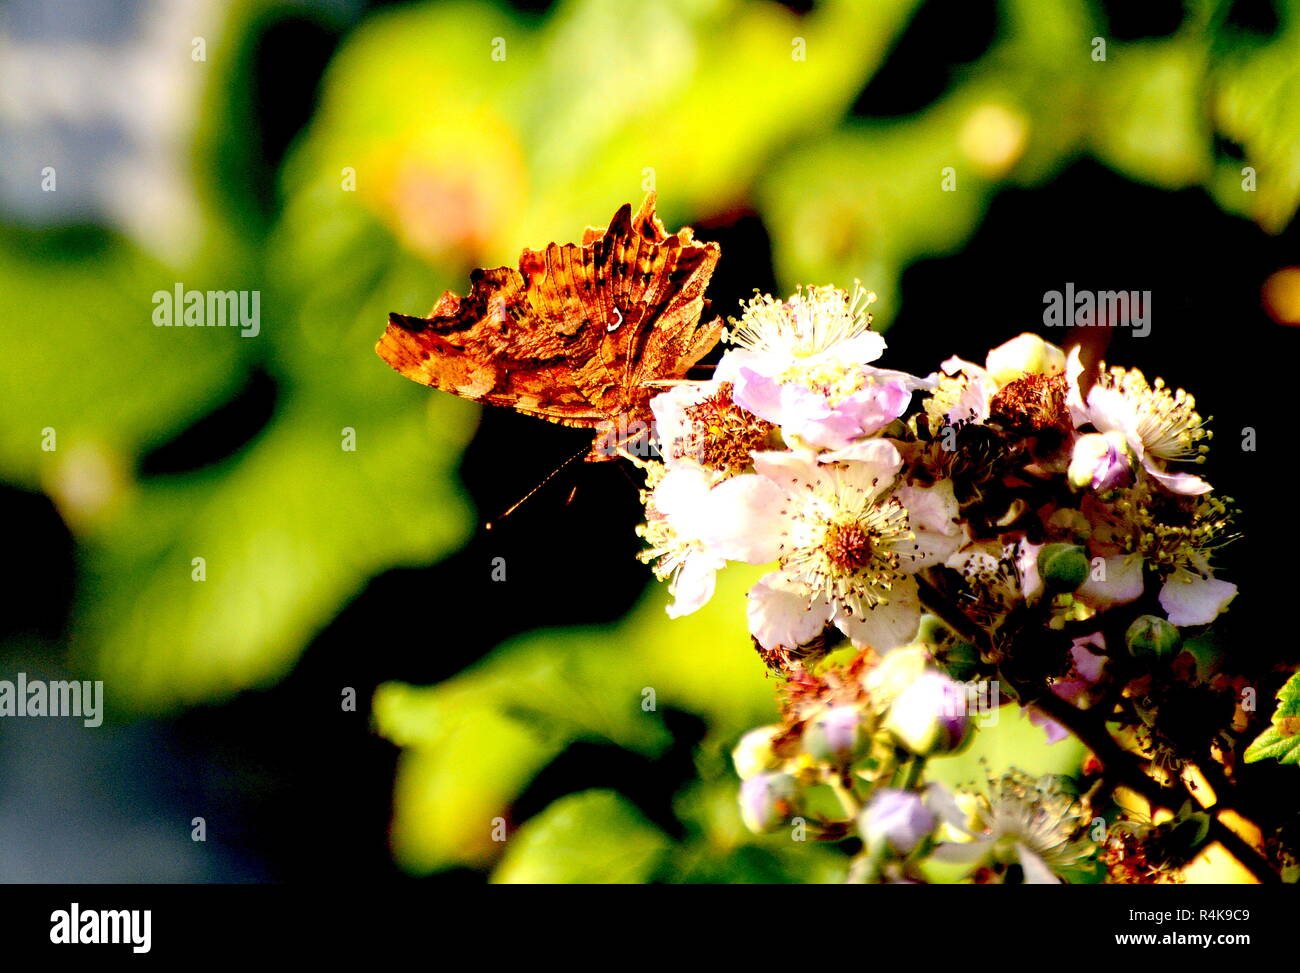 Comma Butterfly, Underwing - Polygonia c-album - Stock Image